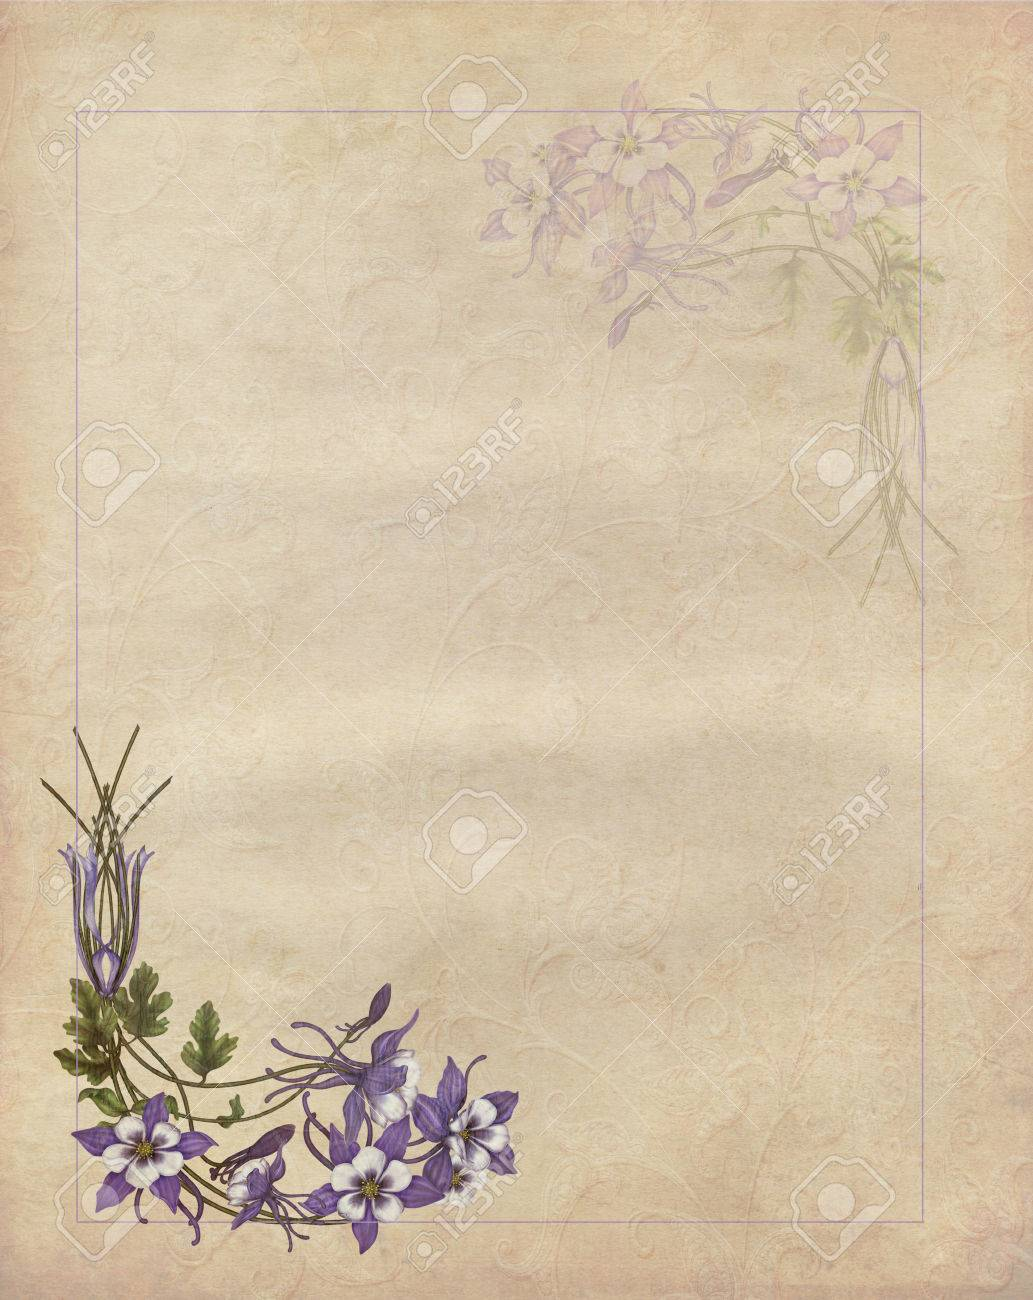 Romantic letter with flowers in vintage paper - 32091589